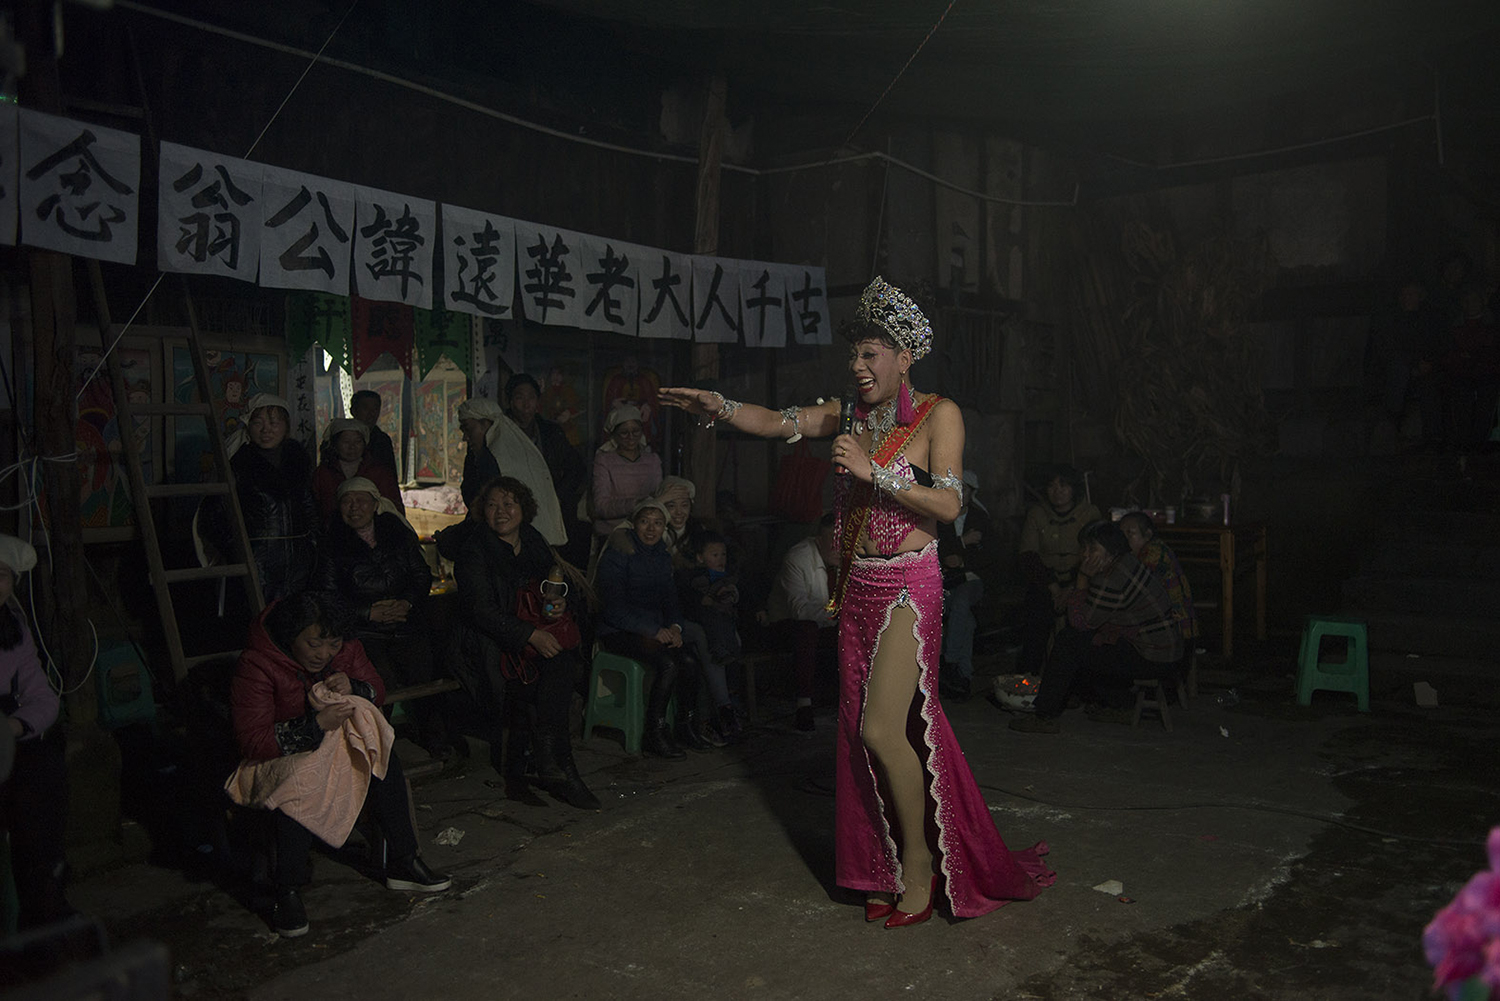 Drag queen Lala, 42, performs at a funeral in Qijiang district of Chongqing municipality, February 28, 2017. Lala is a friend of Liangzi, and she became a funeral performer around 2002.